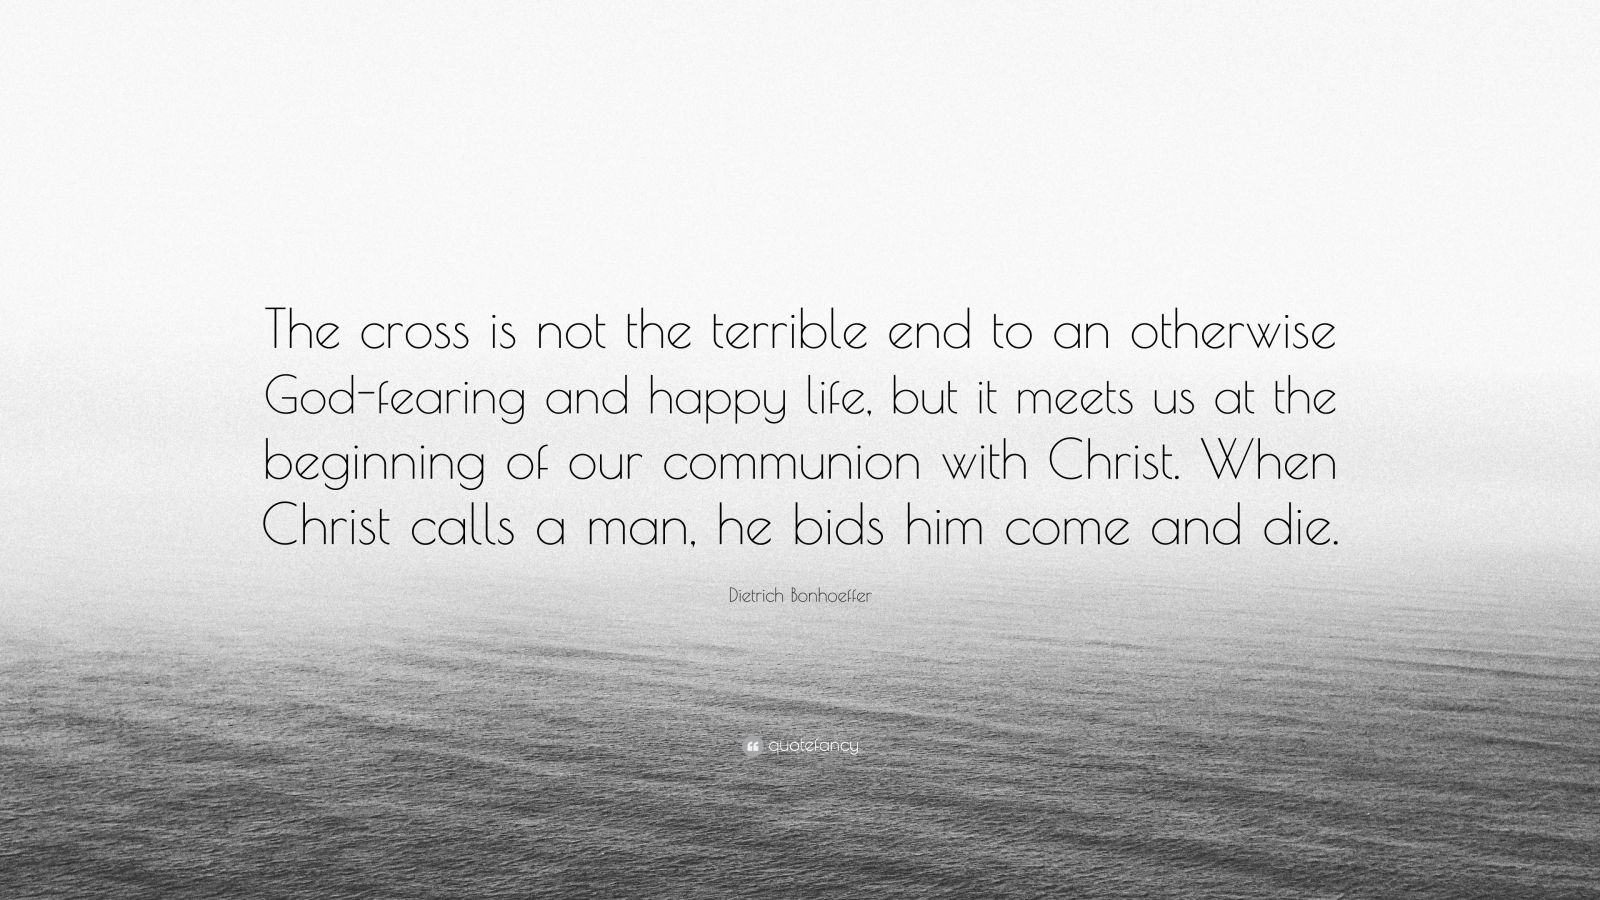 """Dietrich Bonhoeffer Quote: """"The cross is not the terrible end to an otherwise God-fearing and happy life, but it meets us at the beginning of our communion with Christ. When Christ calls a man, he bids him come and die."""""""